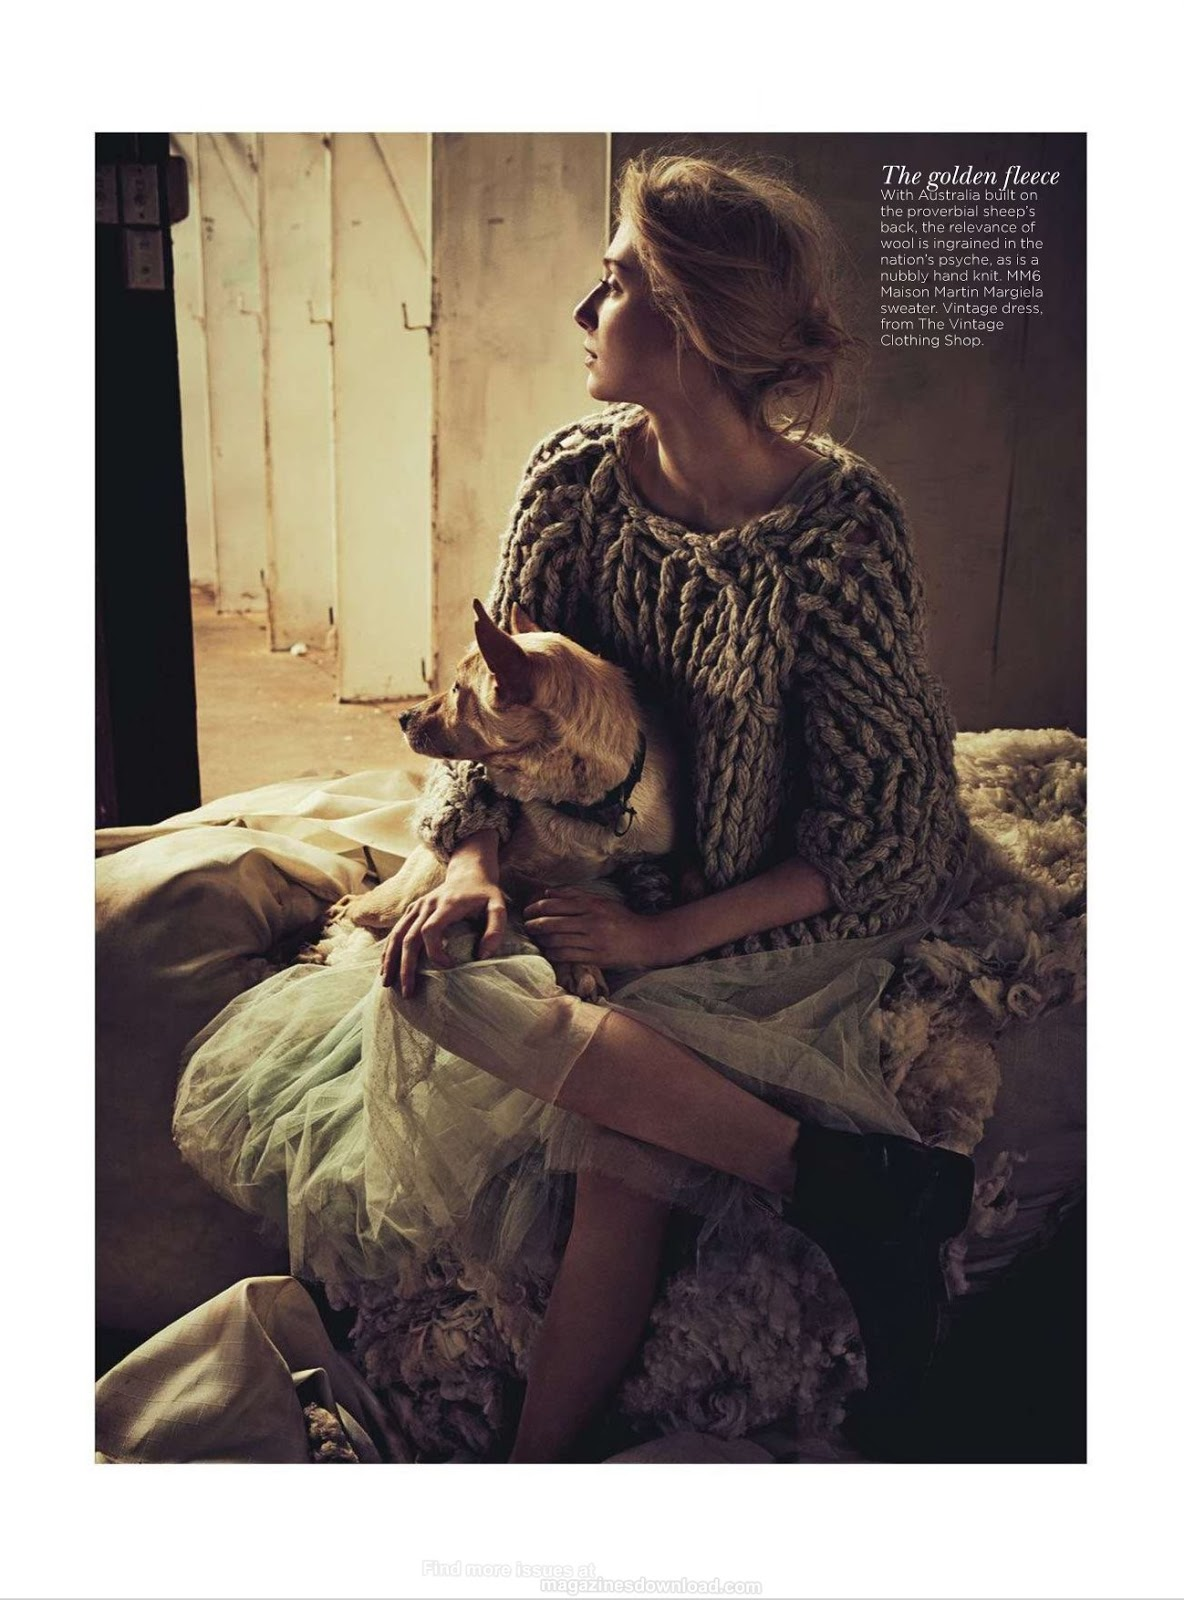 Gatsby actress Elizabeth Debicki by Will Davidson for Vogue Australia December 2012